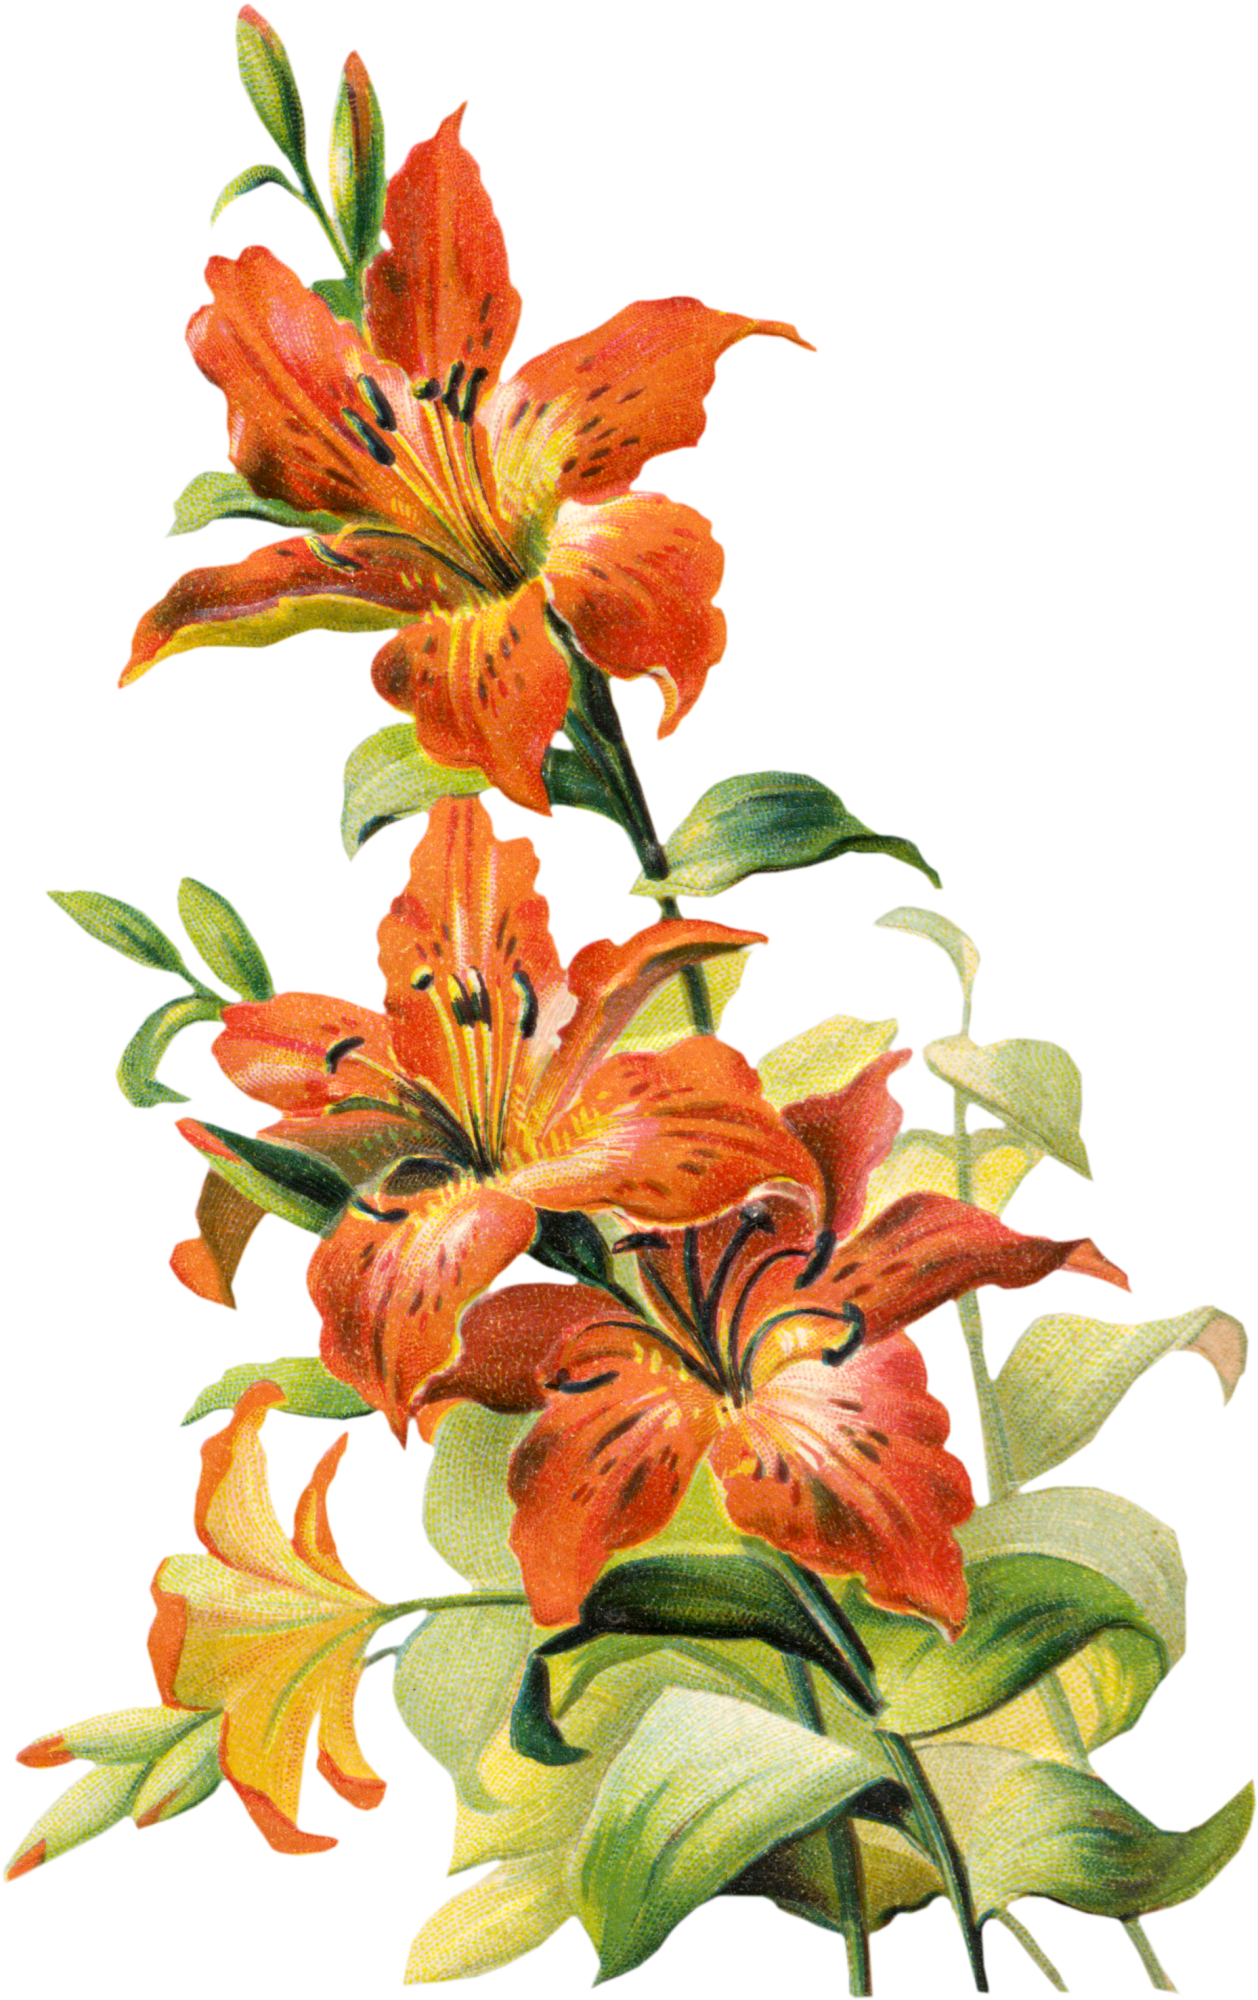 Lily flower clipart royalty free download Image - Tiger-lily-flower-clipart-free-clip-art-images-ZDA1R7 ... royalty free download